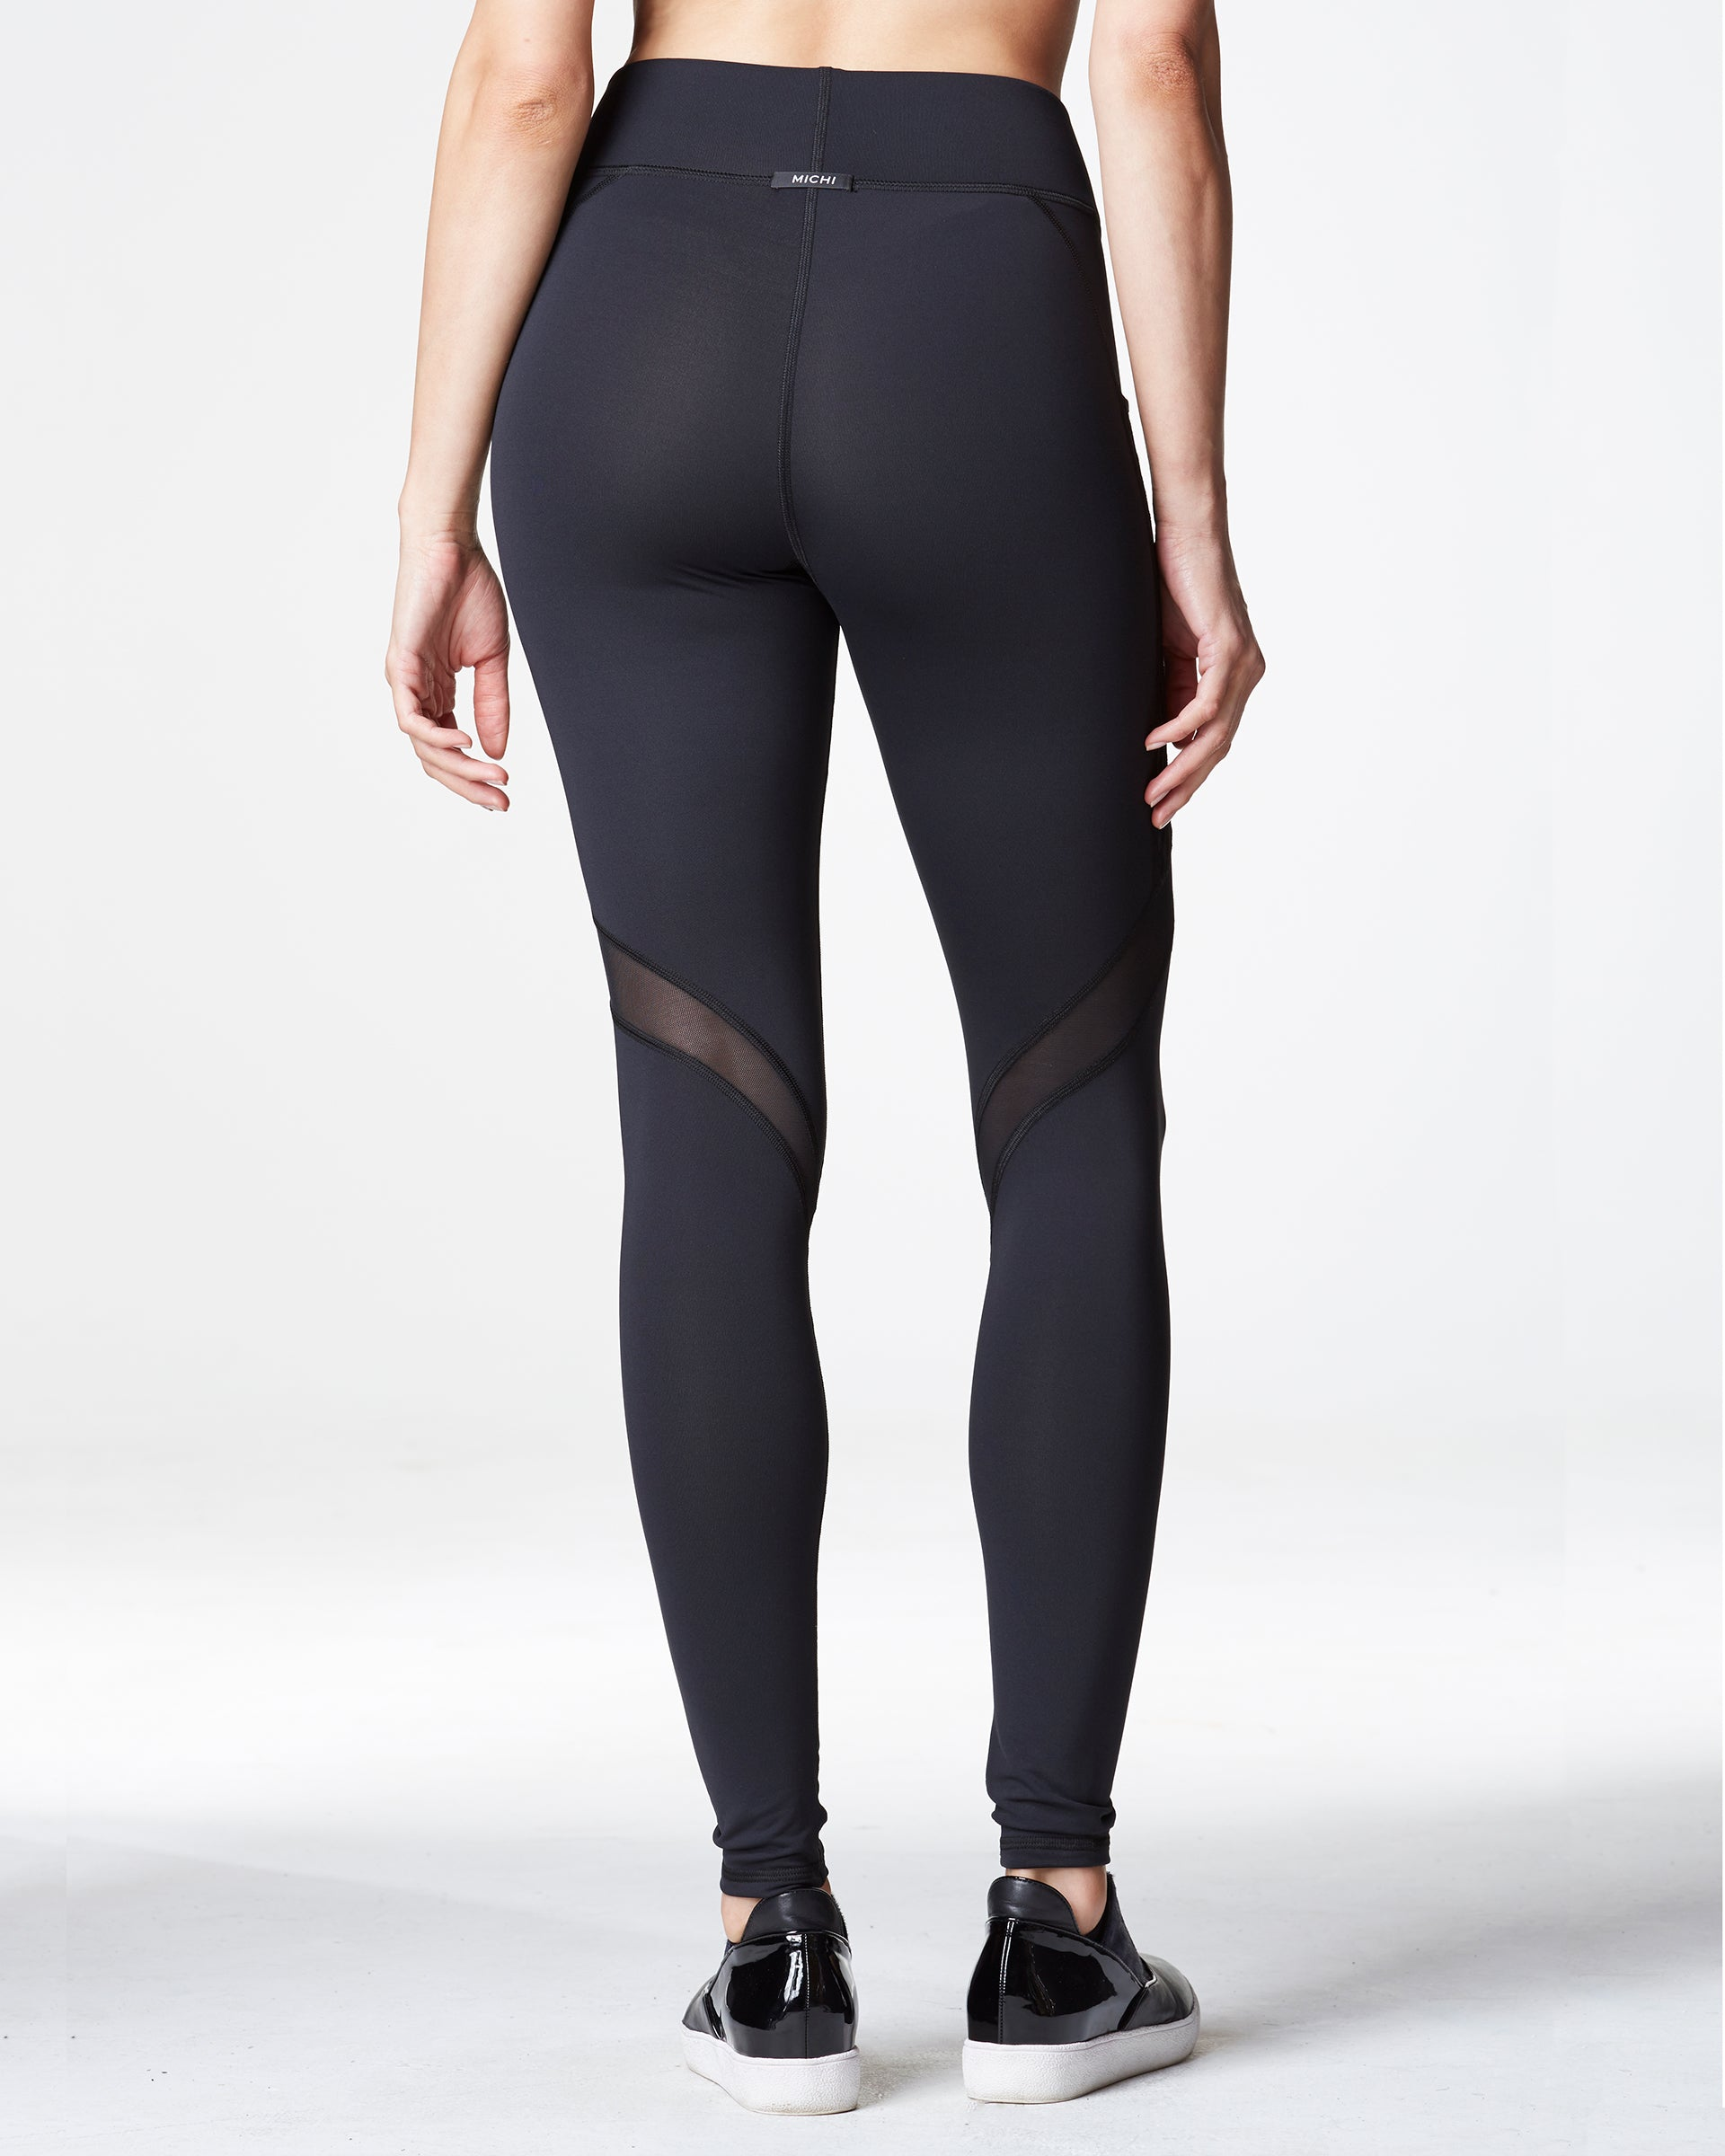 storme-pocket-legging-black